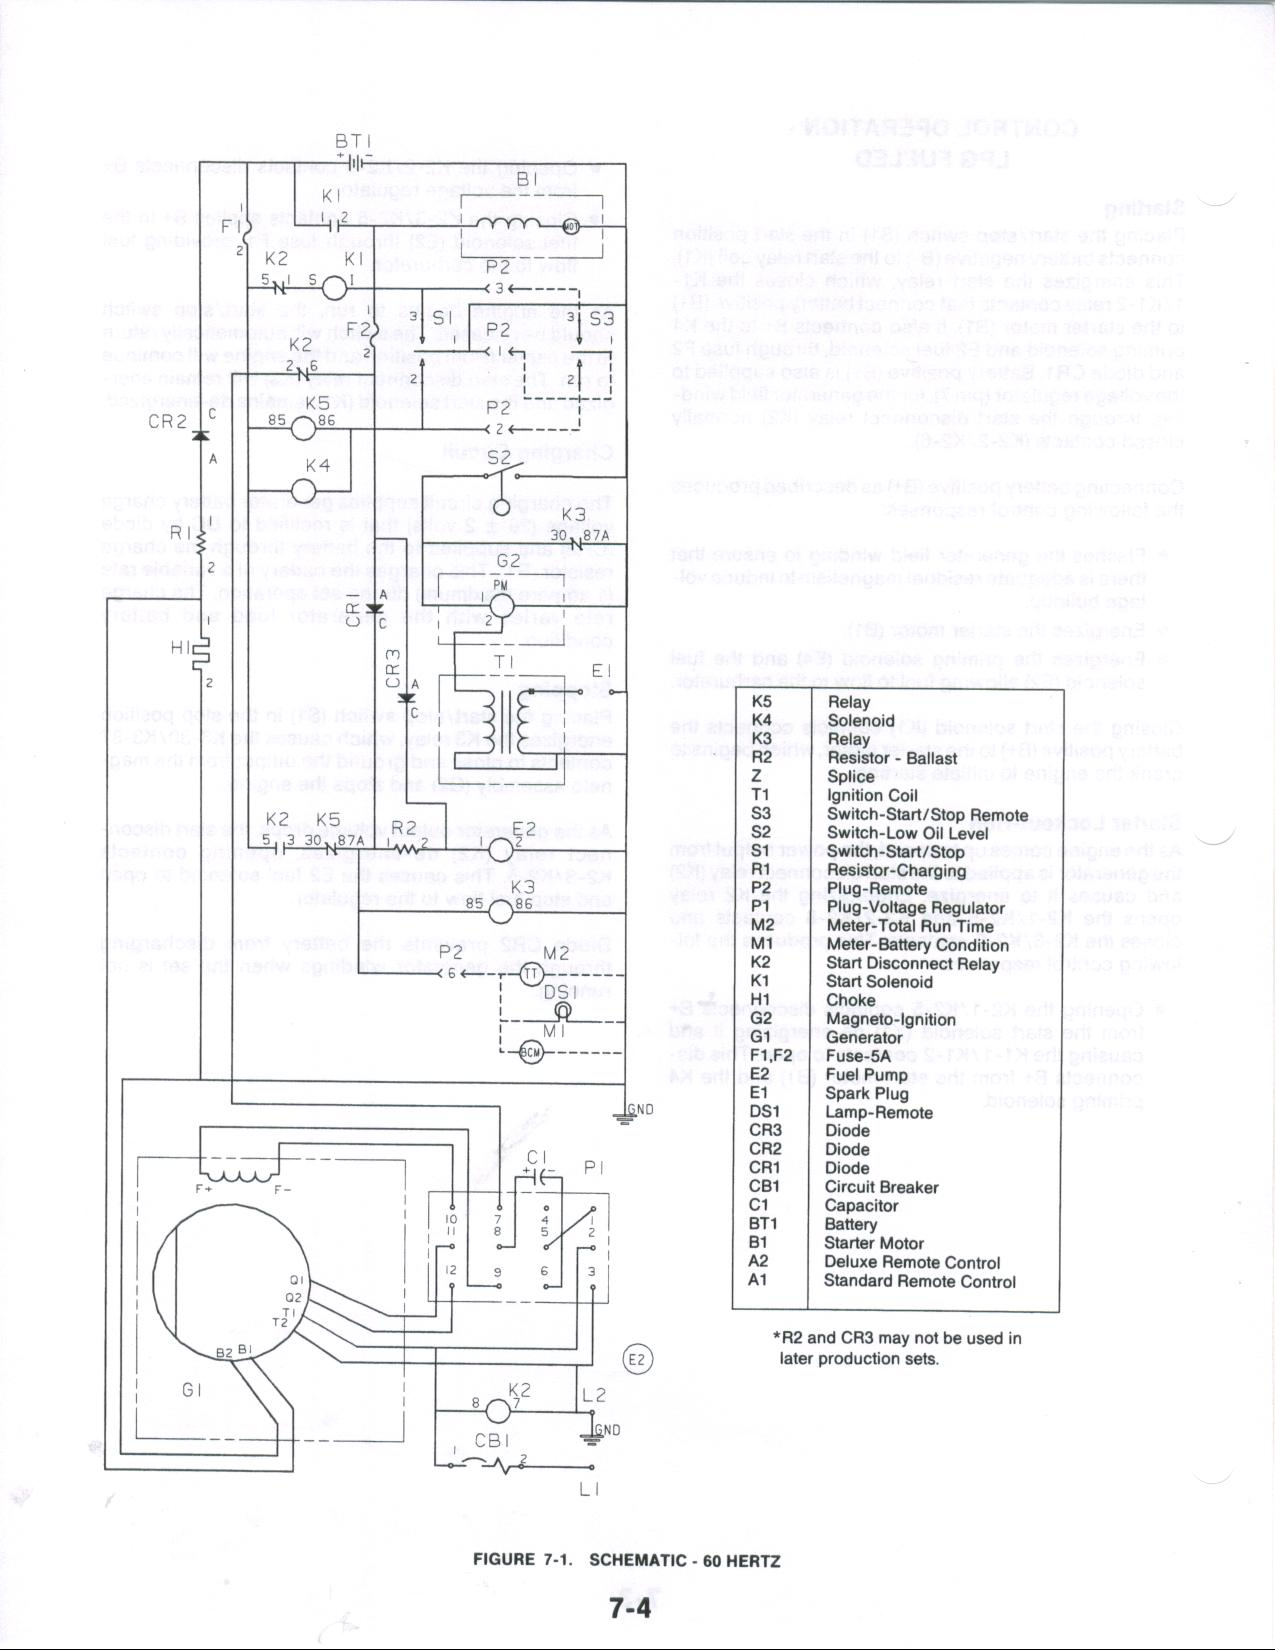 Arduino Wiring Diagram Additionally Nissan Ecu Pinouts Diagram As Well